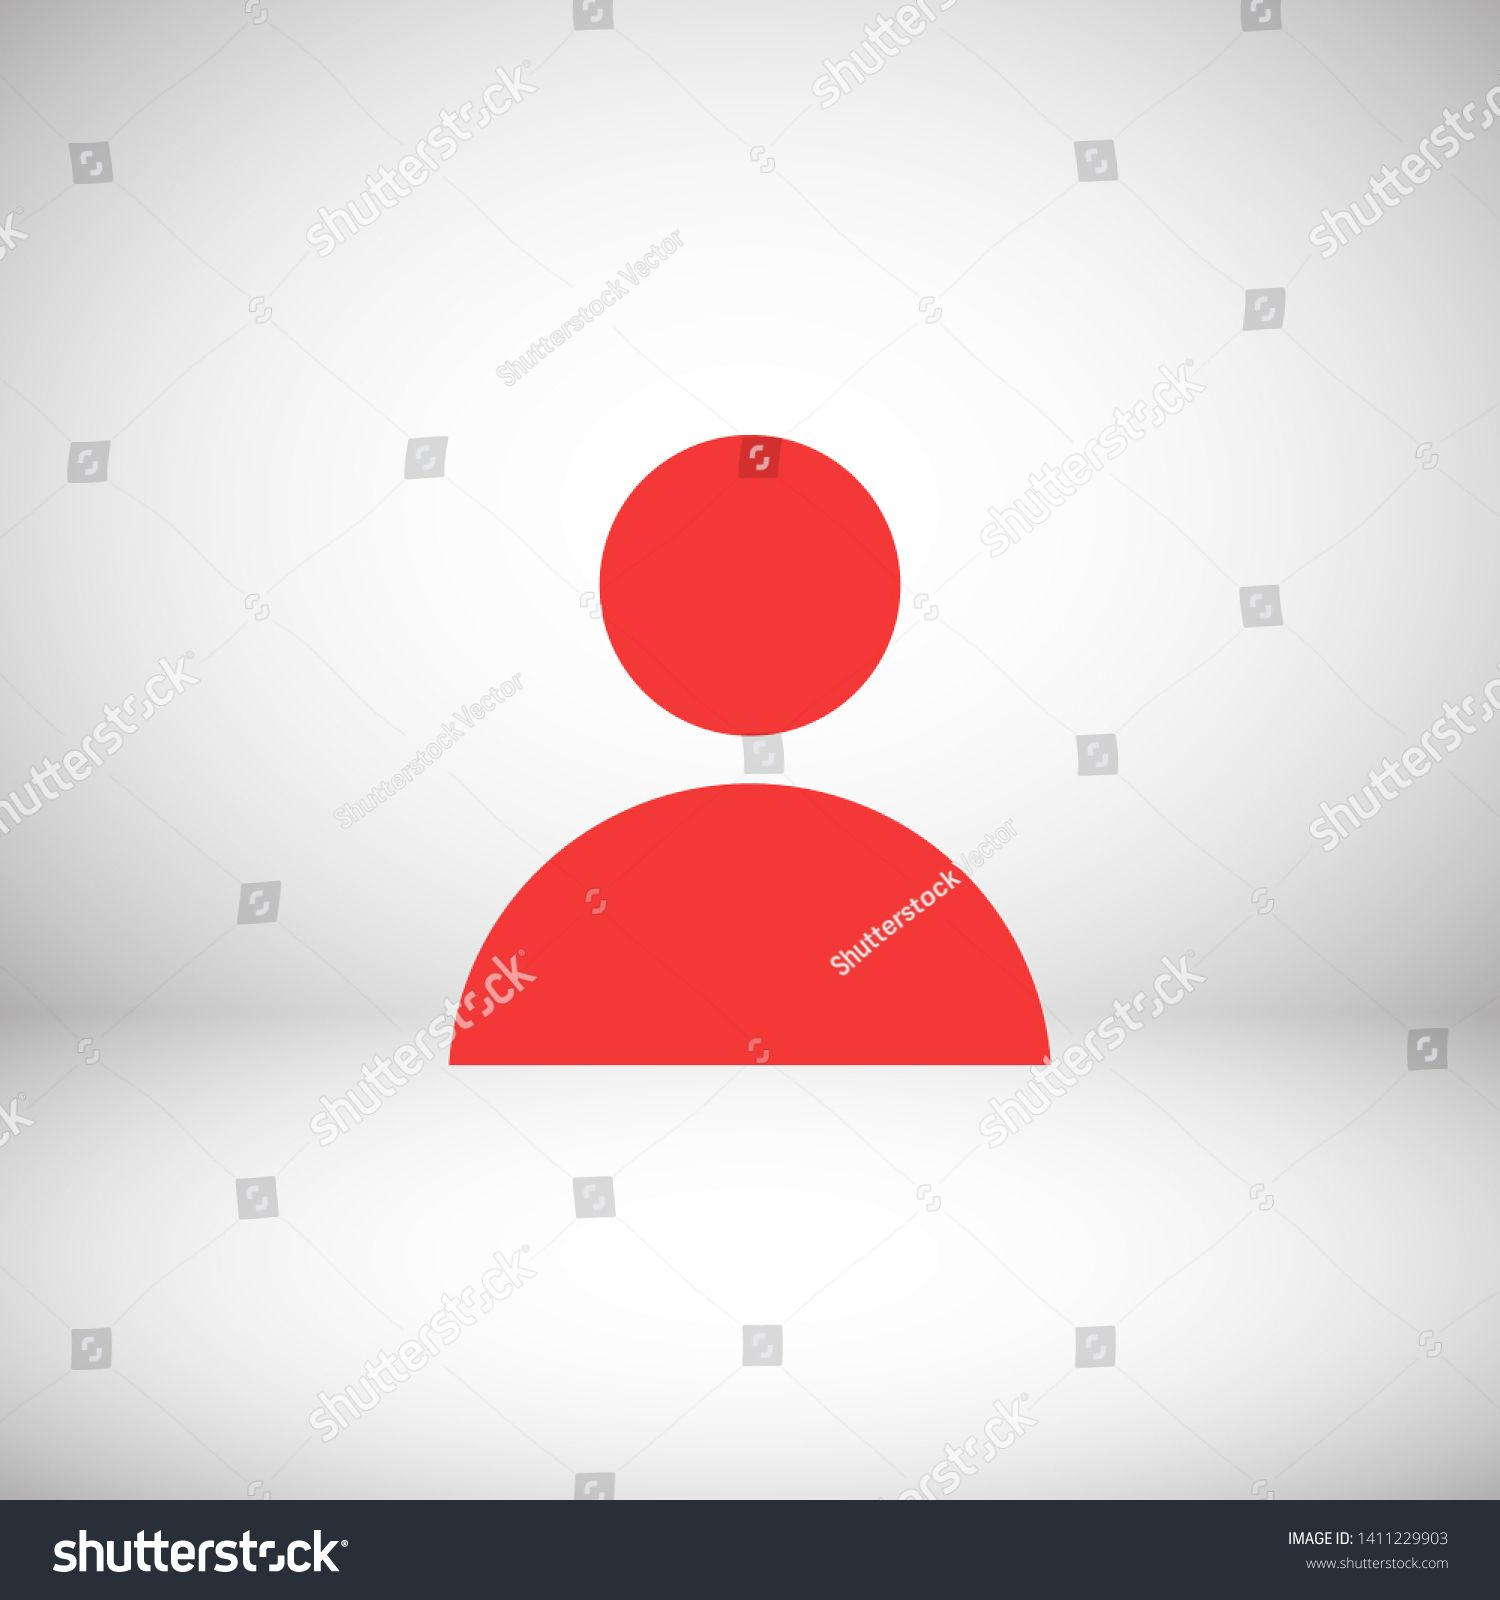 User Icon Vector People Icon Profile Vector Icon Person Illustration Business User Icon Users Group Symbol Male People Icon Business Icons Design Vector